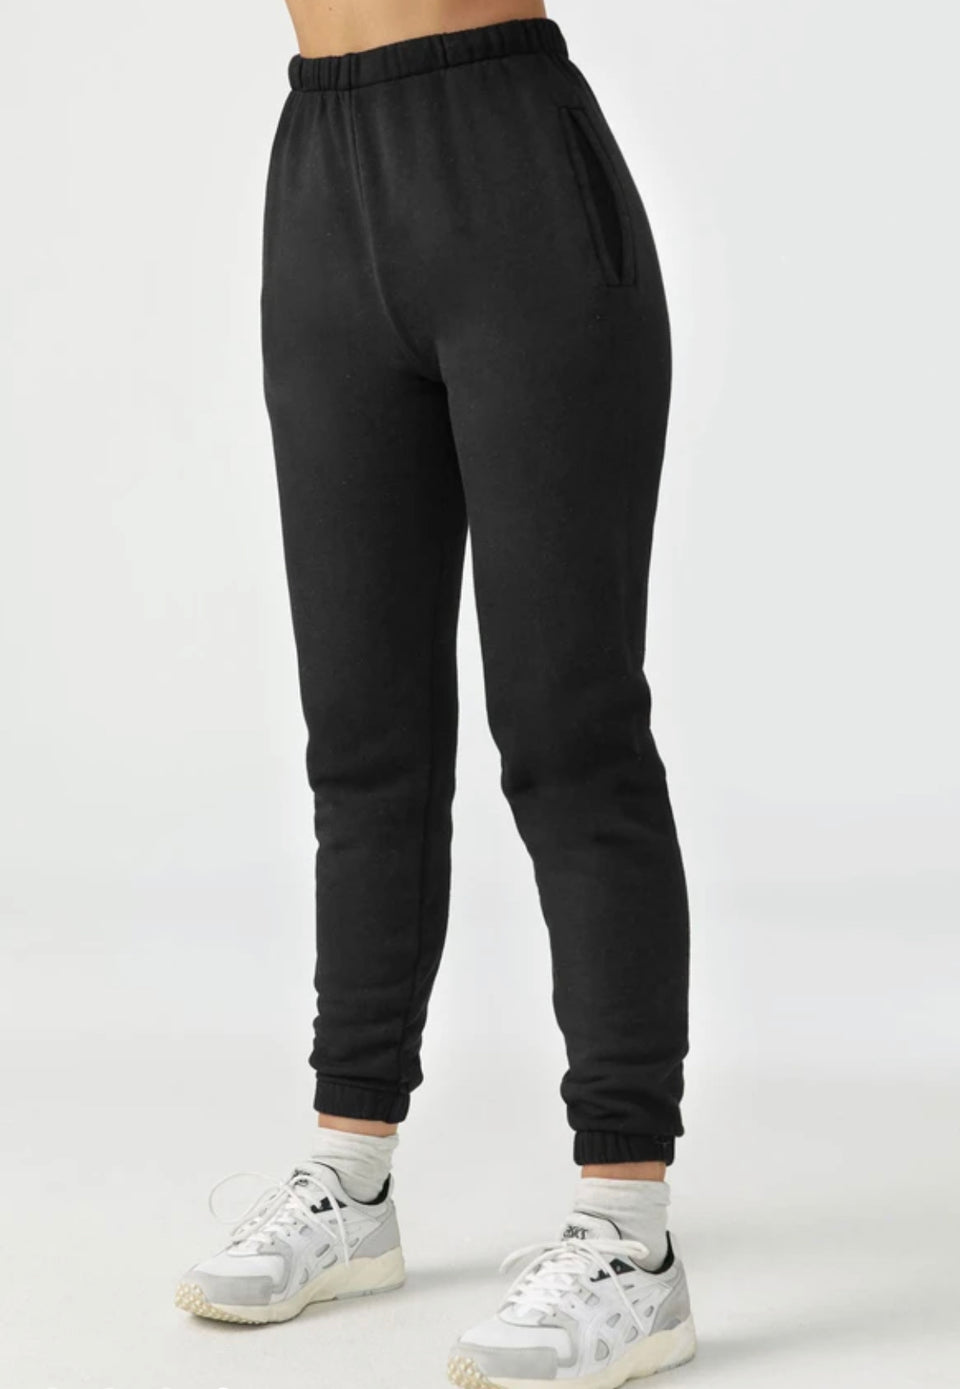 Joah Brown Empire Jogger Black French Terry